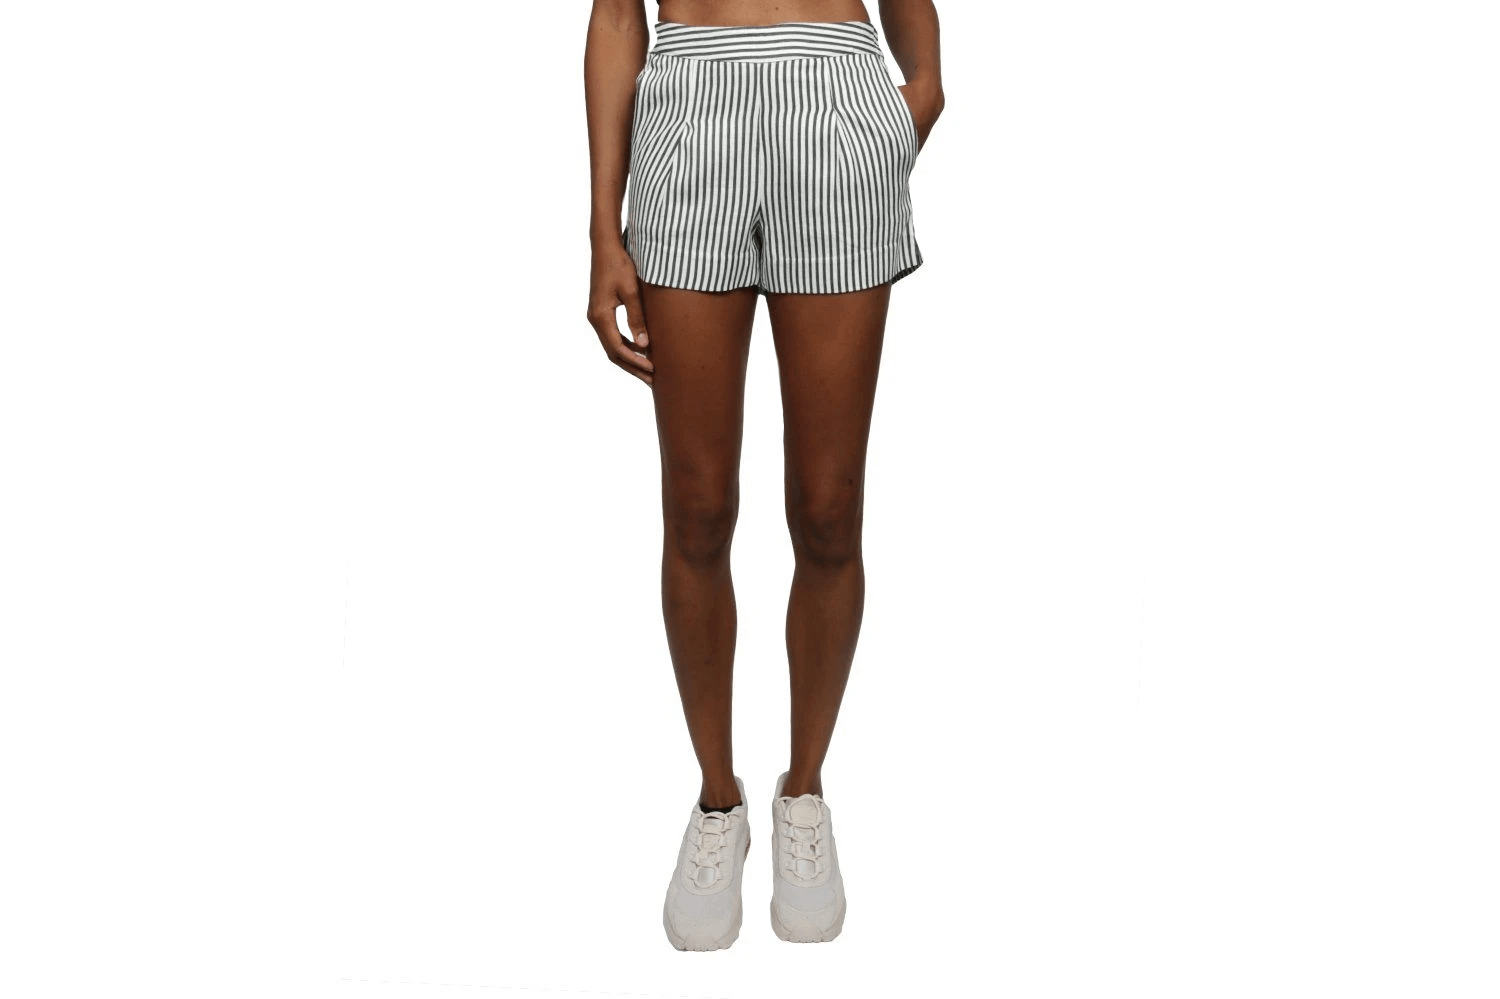 BEACH SHORTS - 10296 WOMENS SOFTGOODS JUST FEMALE